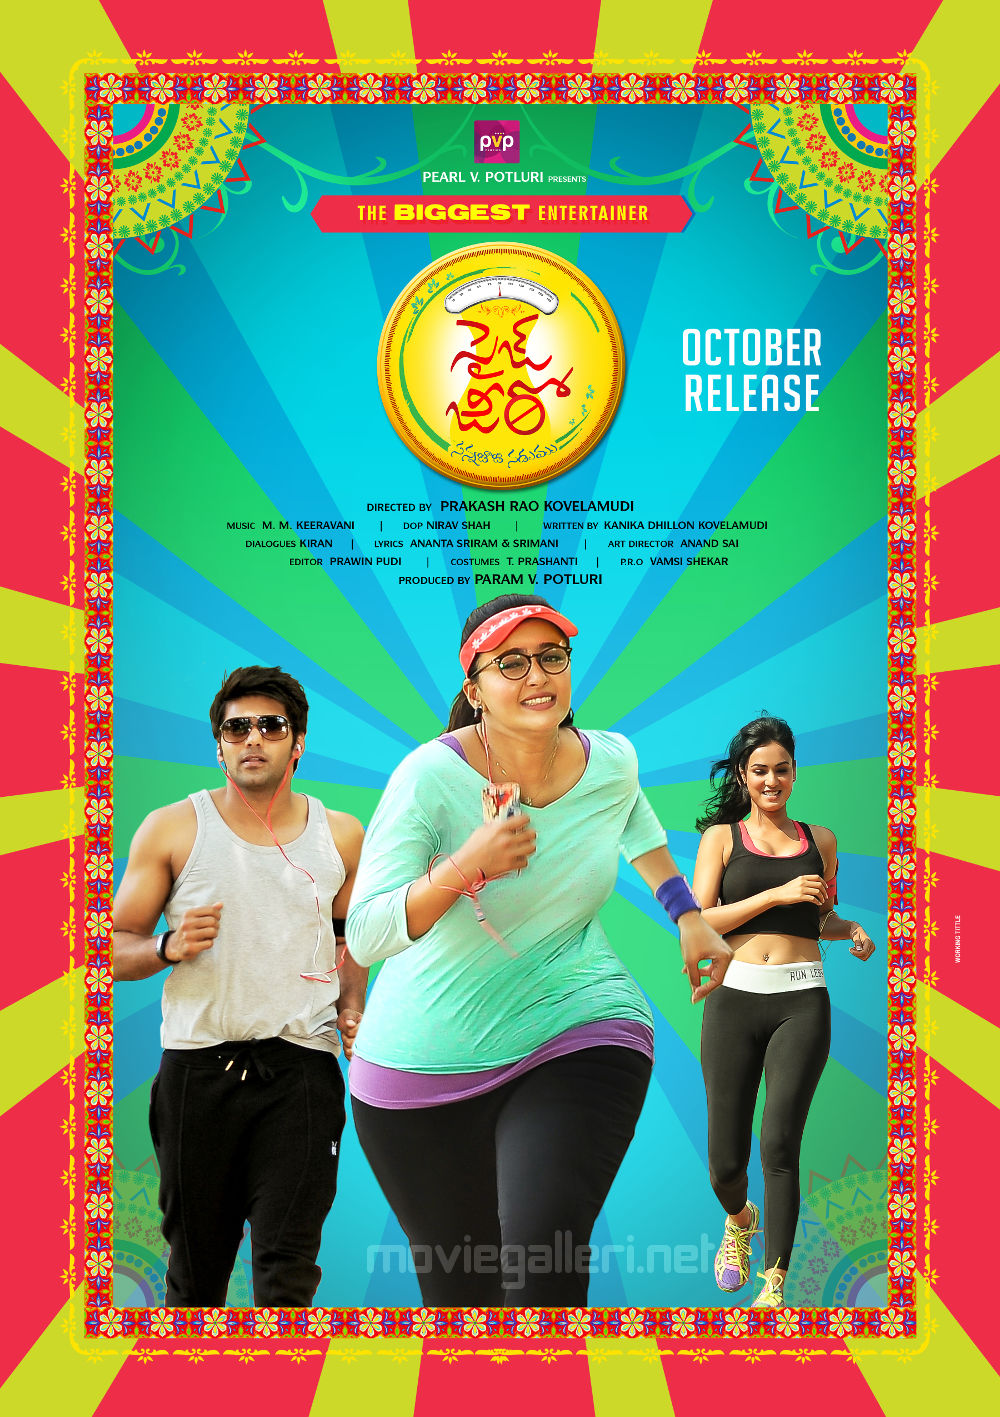 Anushka Shetty's Size Zero Movie Second Look Poster